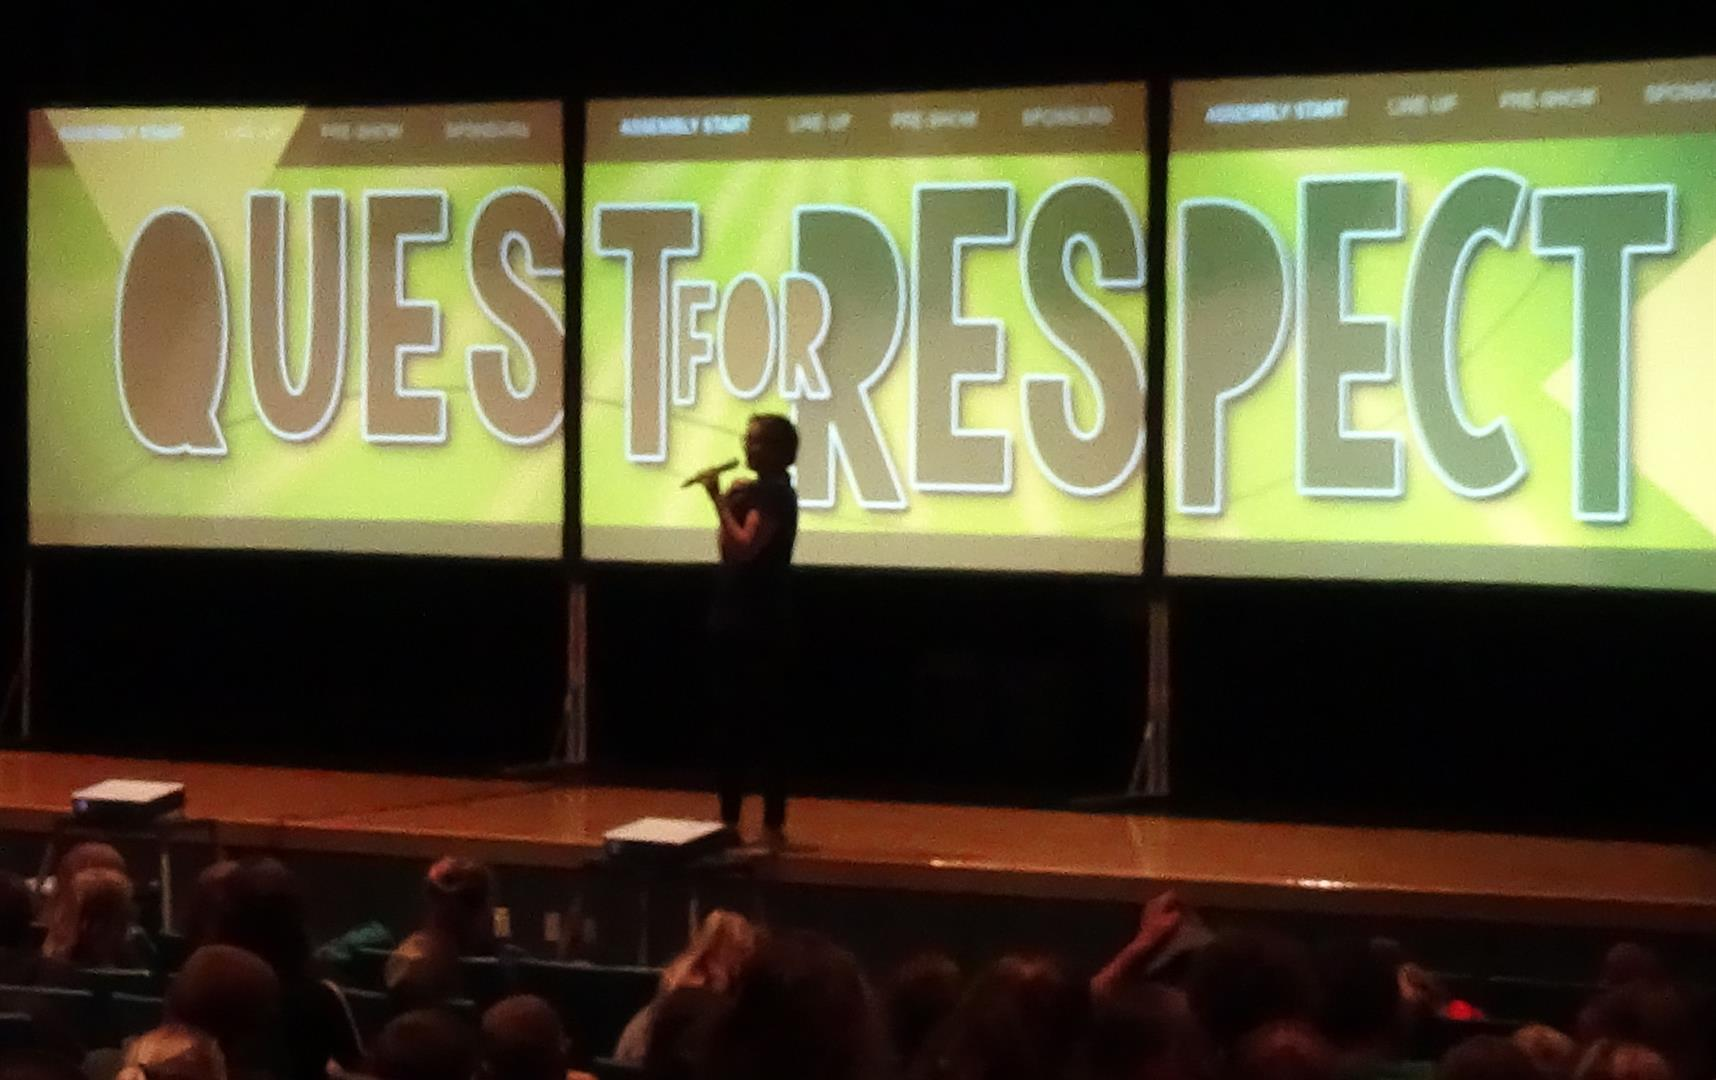 Ashlee Polarek speaks to UV students about respecting yoursel and others